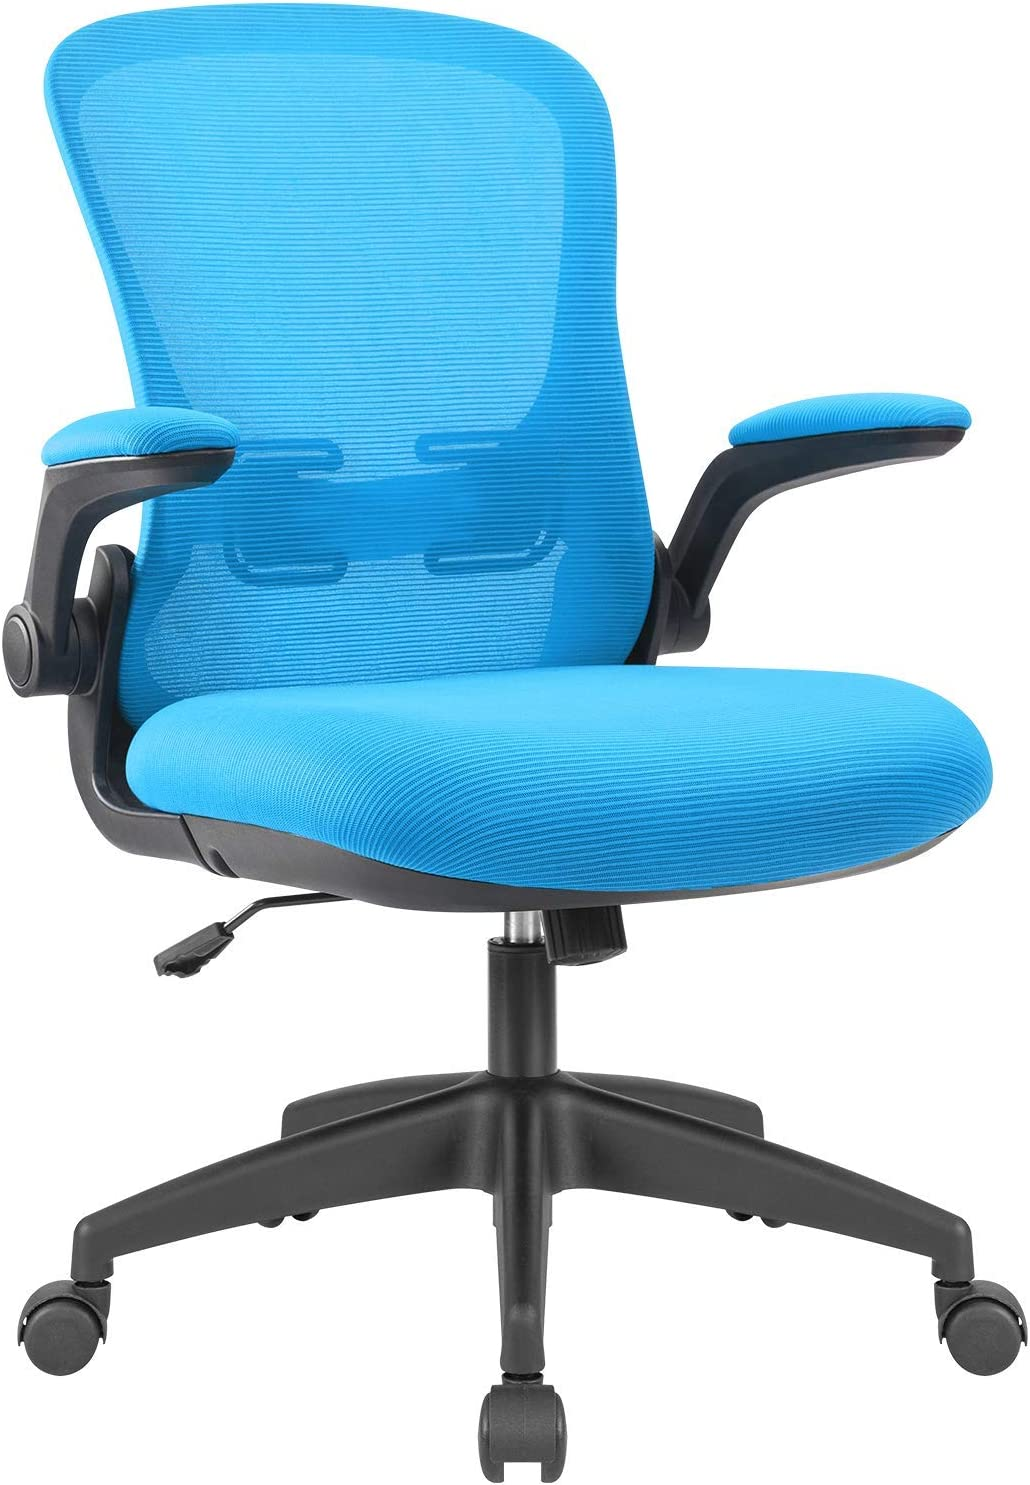 Devoko Office Desk Chair Ergonomic Mesh Chair Lumbar Support with Flip-up Arms and Adjustable Height (Blue)